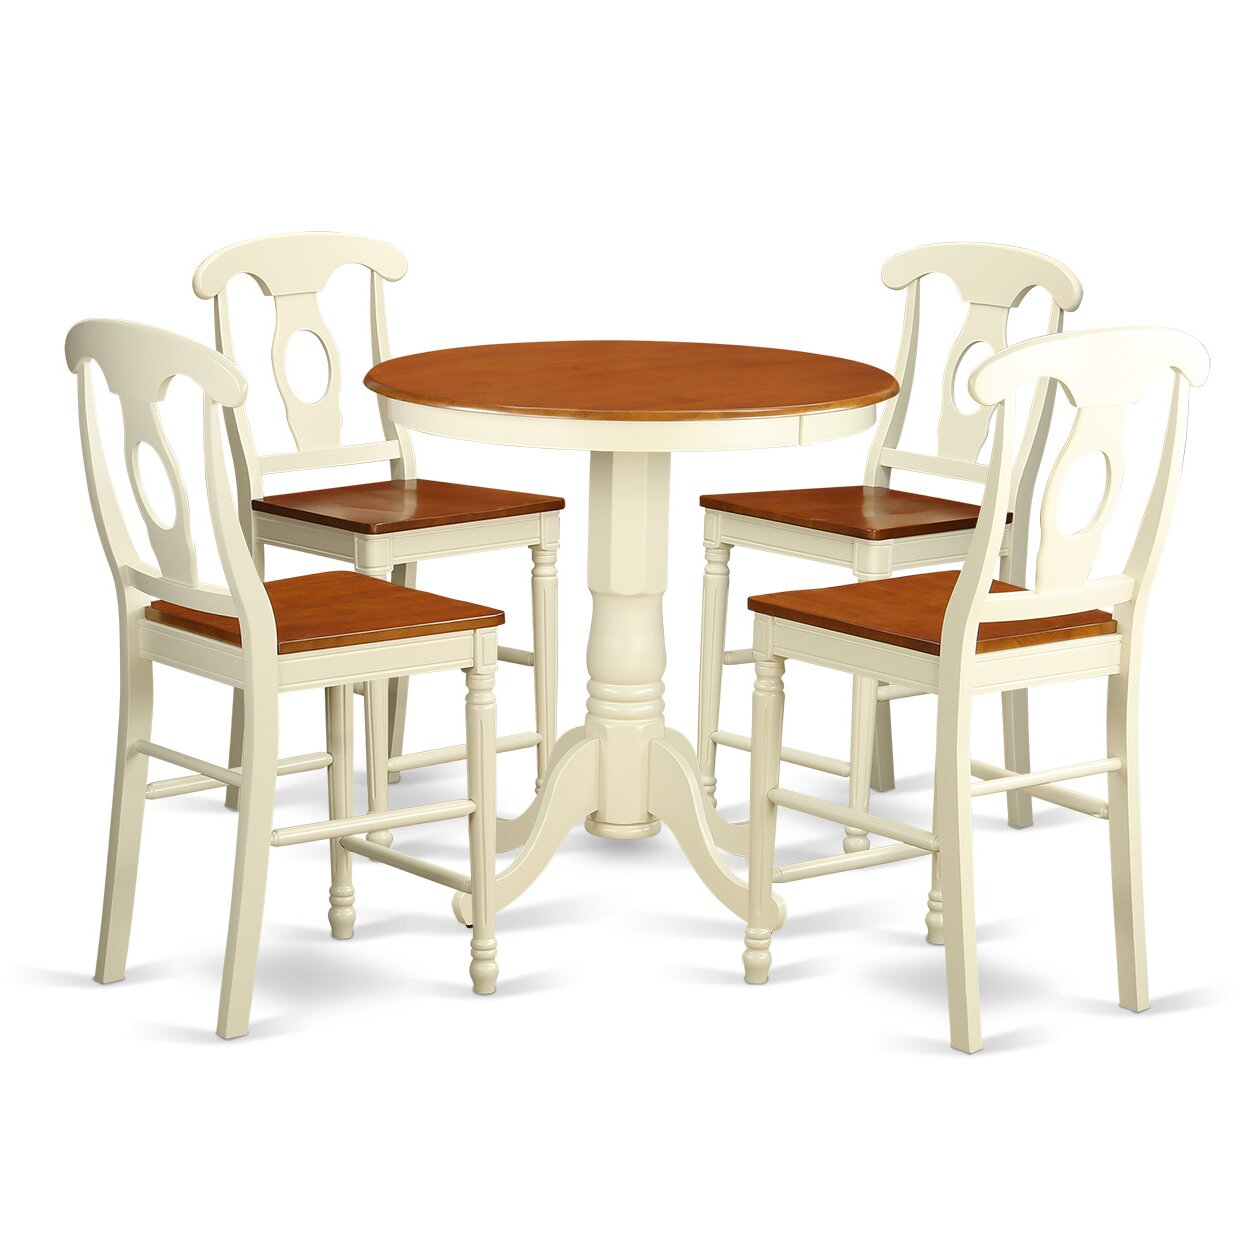 East west eden 5 piece counter height pub table set wayfair for 5 piece dining set